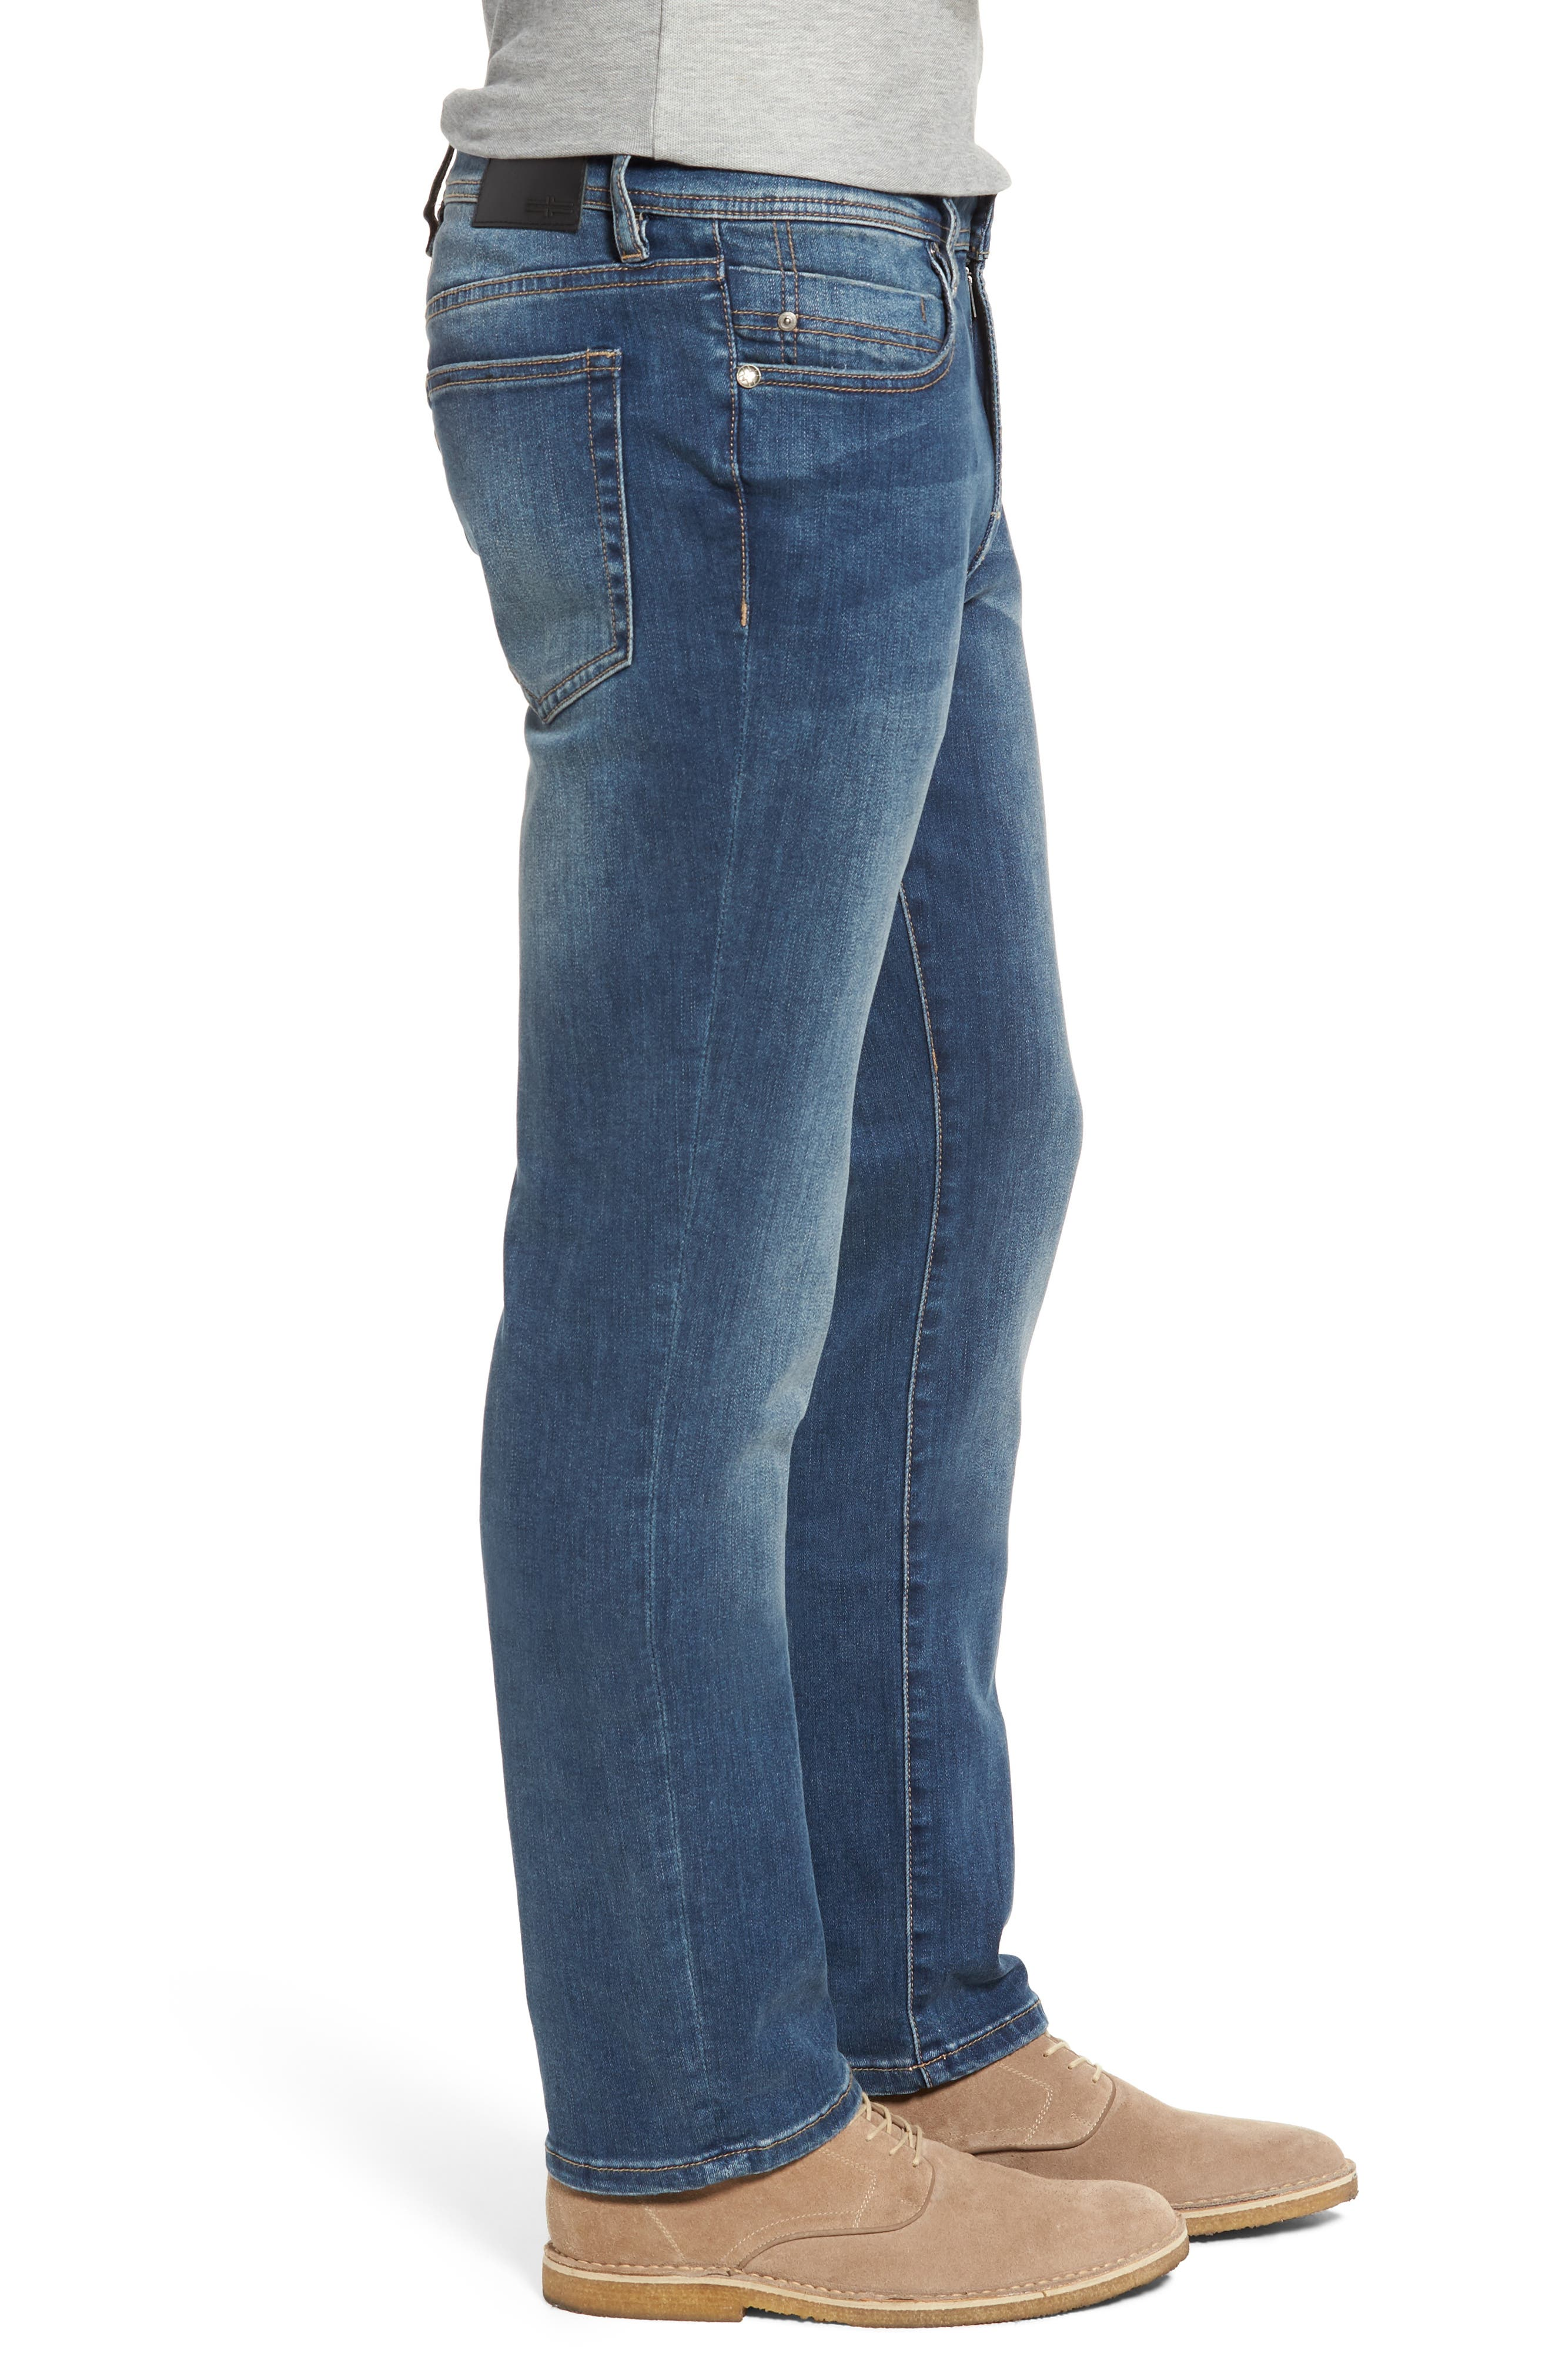 Jeans Co. Regent Relaxed Fit Jeans,                             Alternate thumbnail 3, color,                             CHATSWORTH